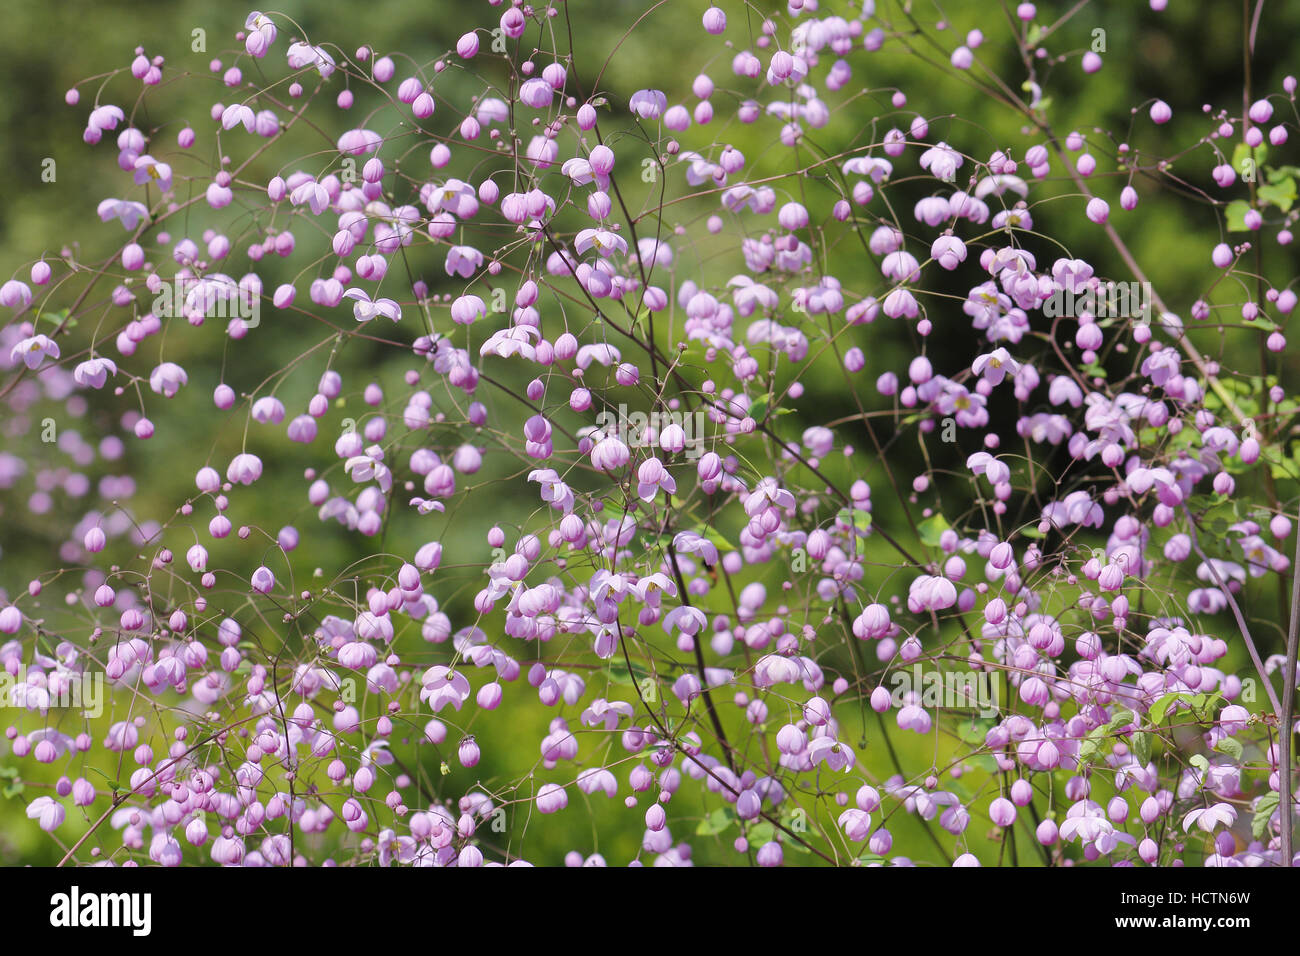 shrub with small blossoms - Stock Image